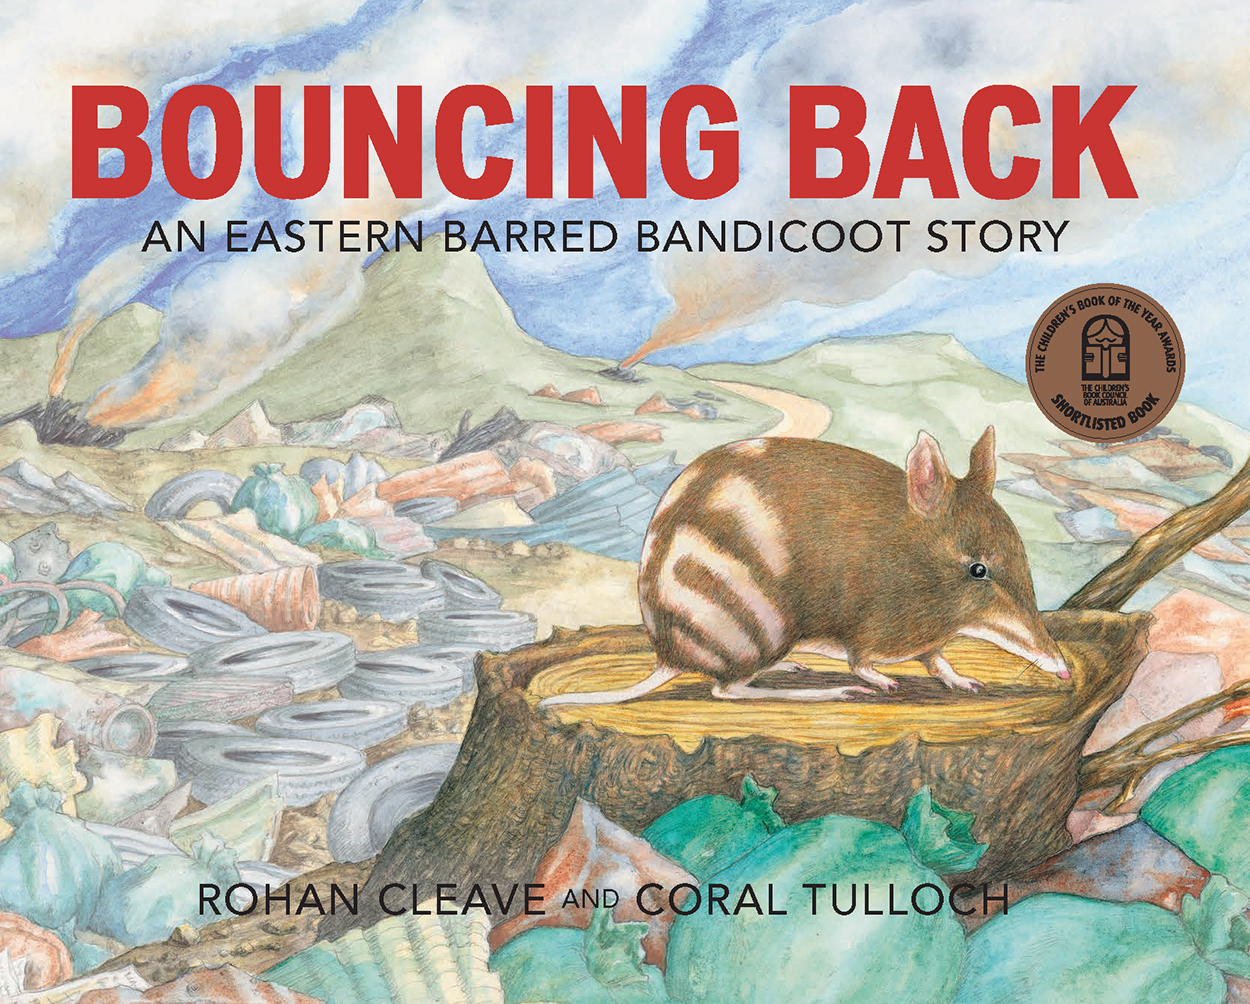 Cover featuring an illustration of an Eastern Barred Bandicoot on a tree s